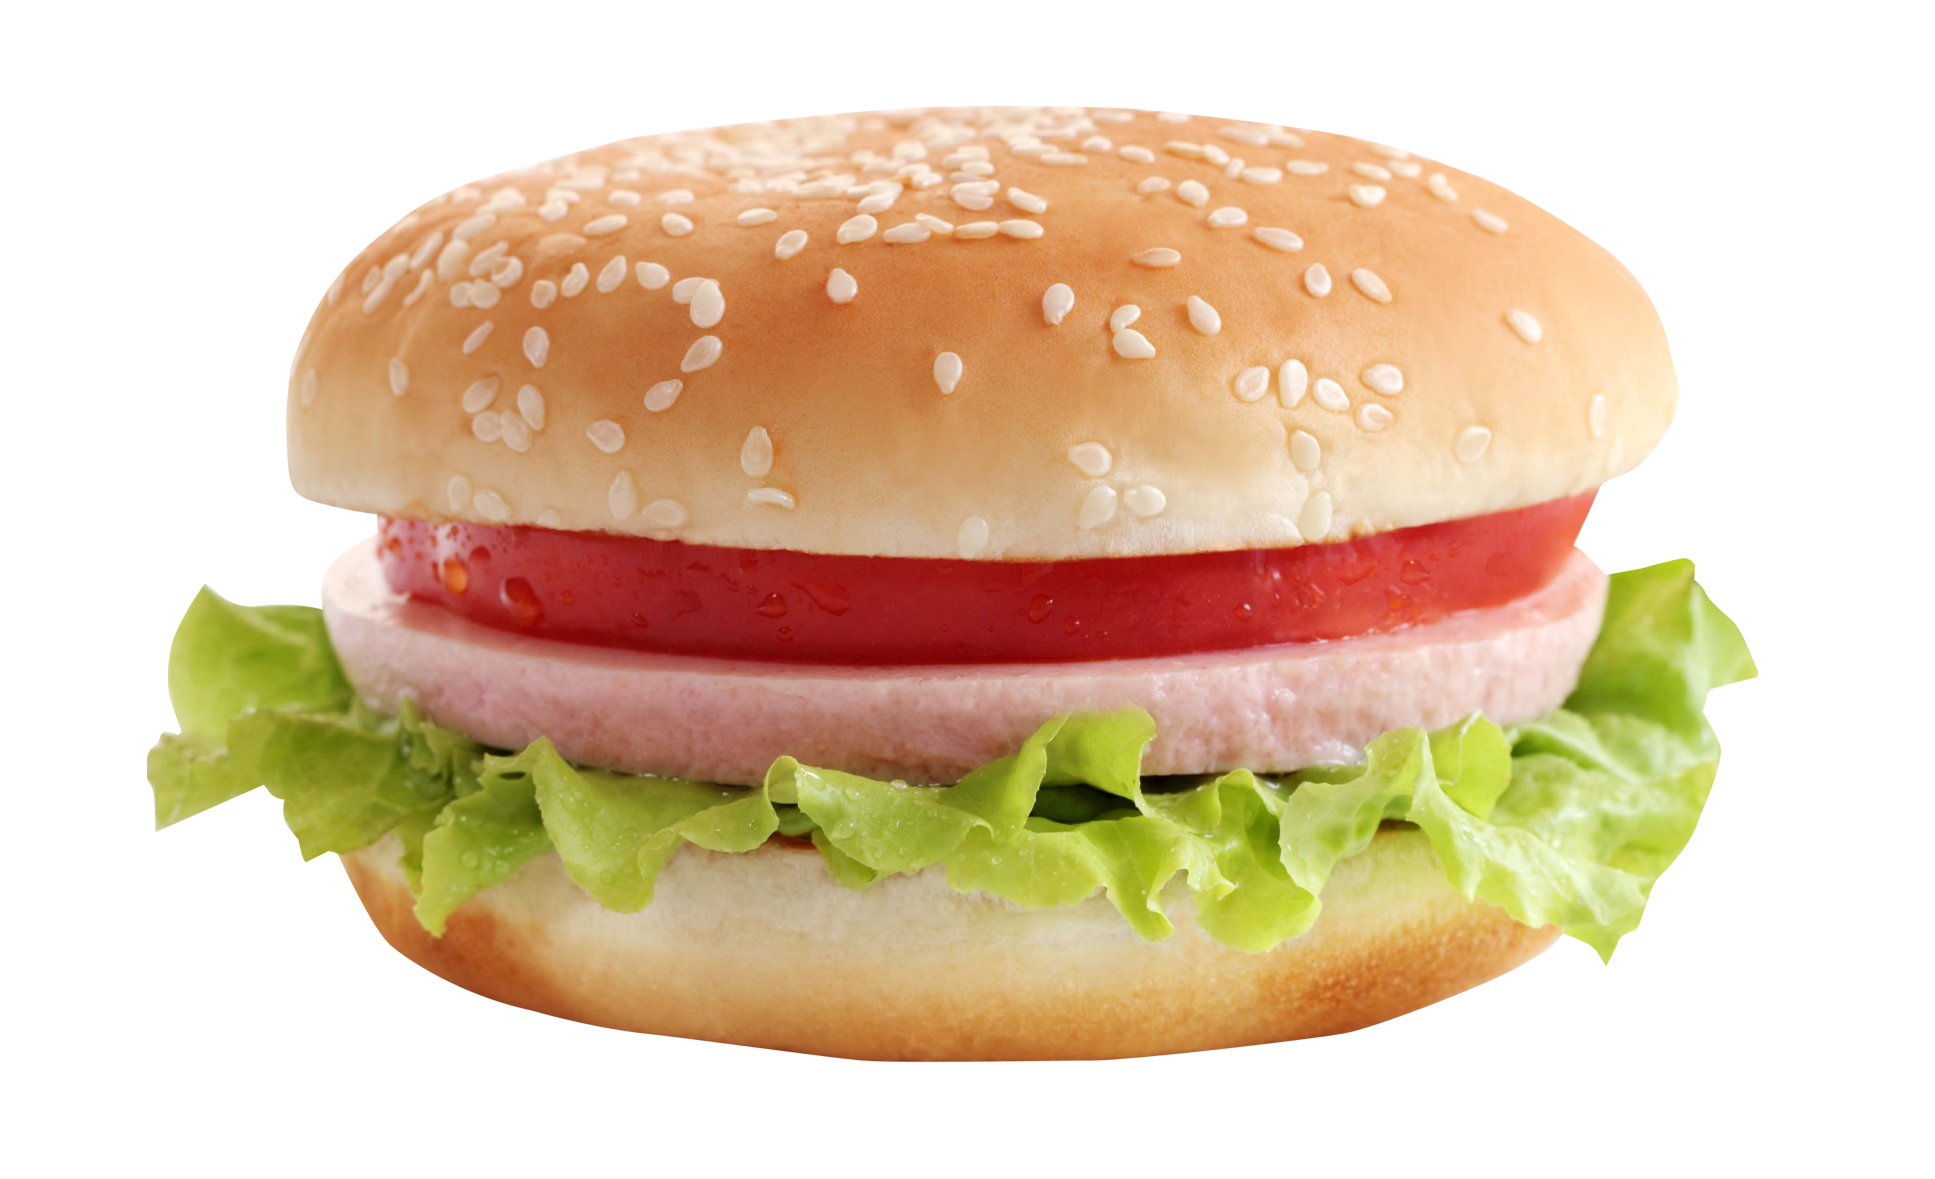 Png transparent images all. Cheeseburger clipart vegetable burger